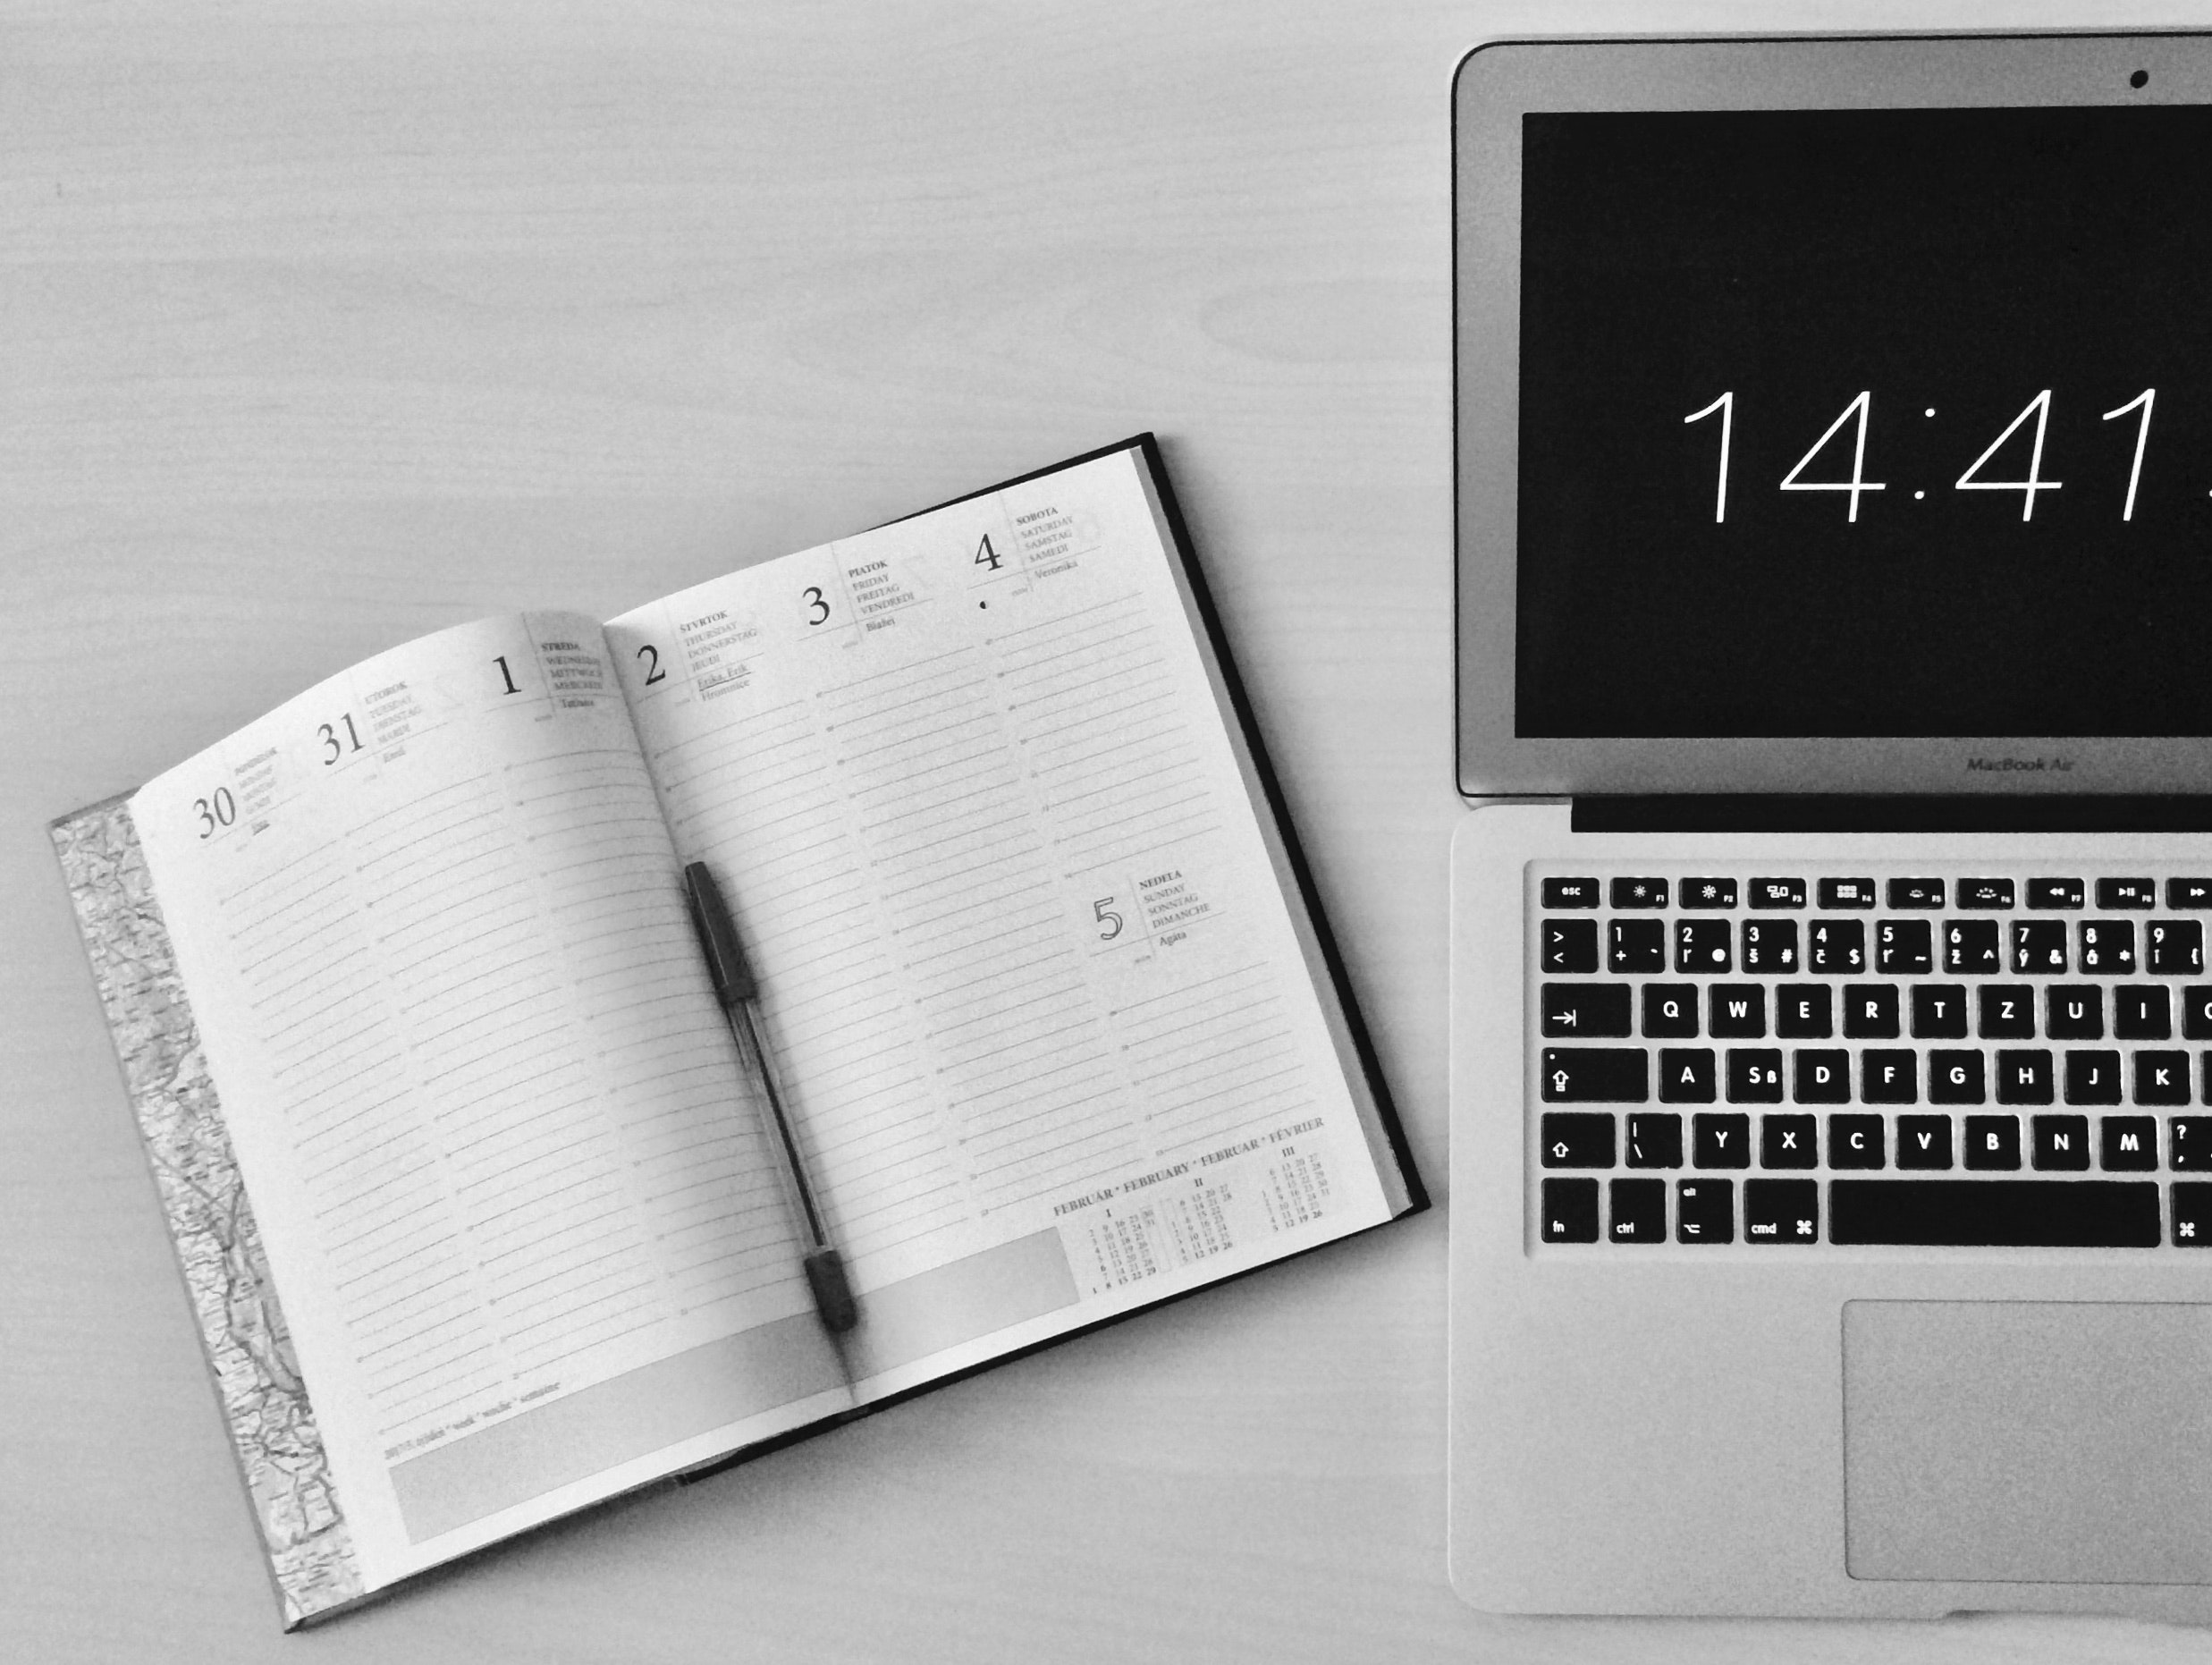 apple-device-black-and-white-business-295826